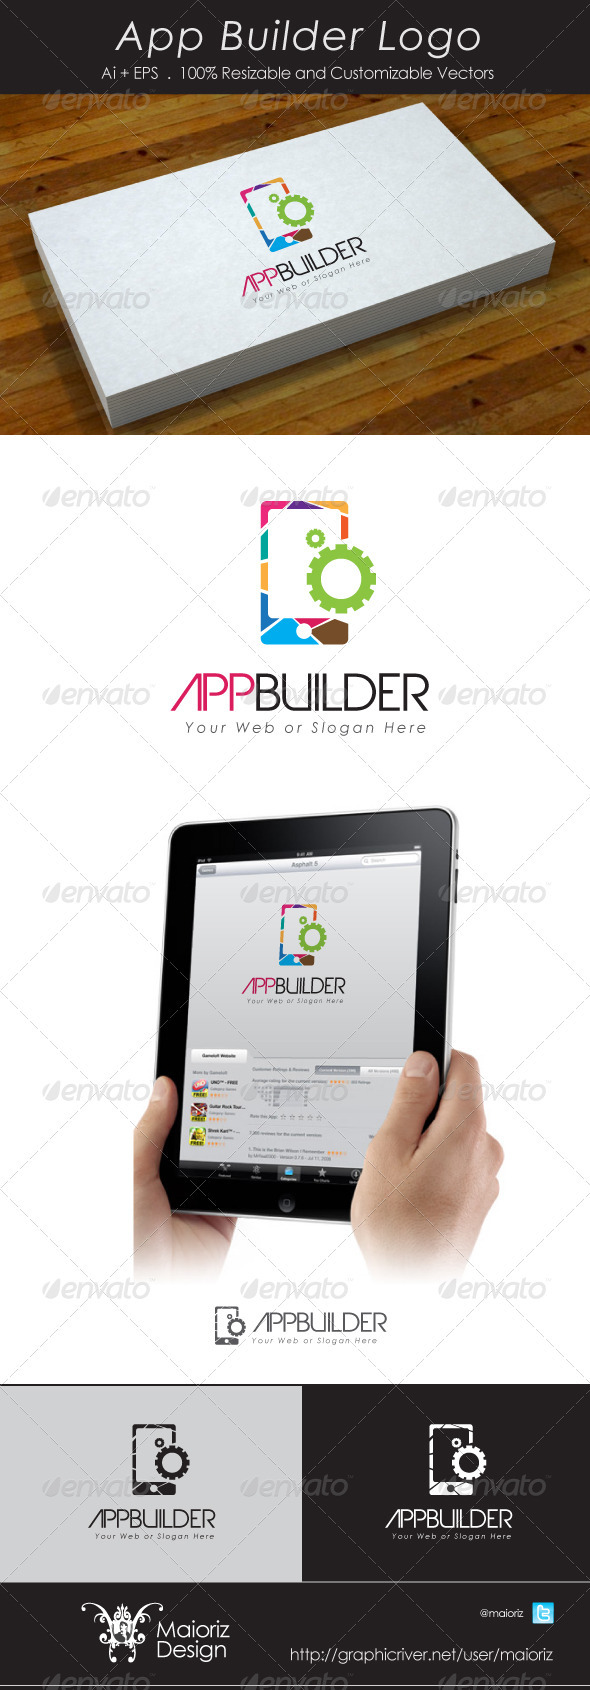 App Builder Logo - Vector Abstract